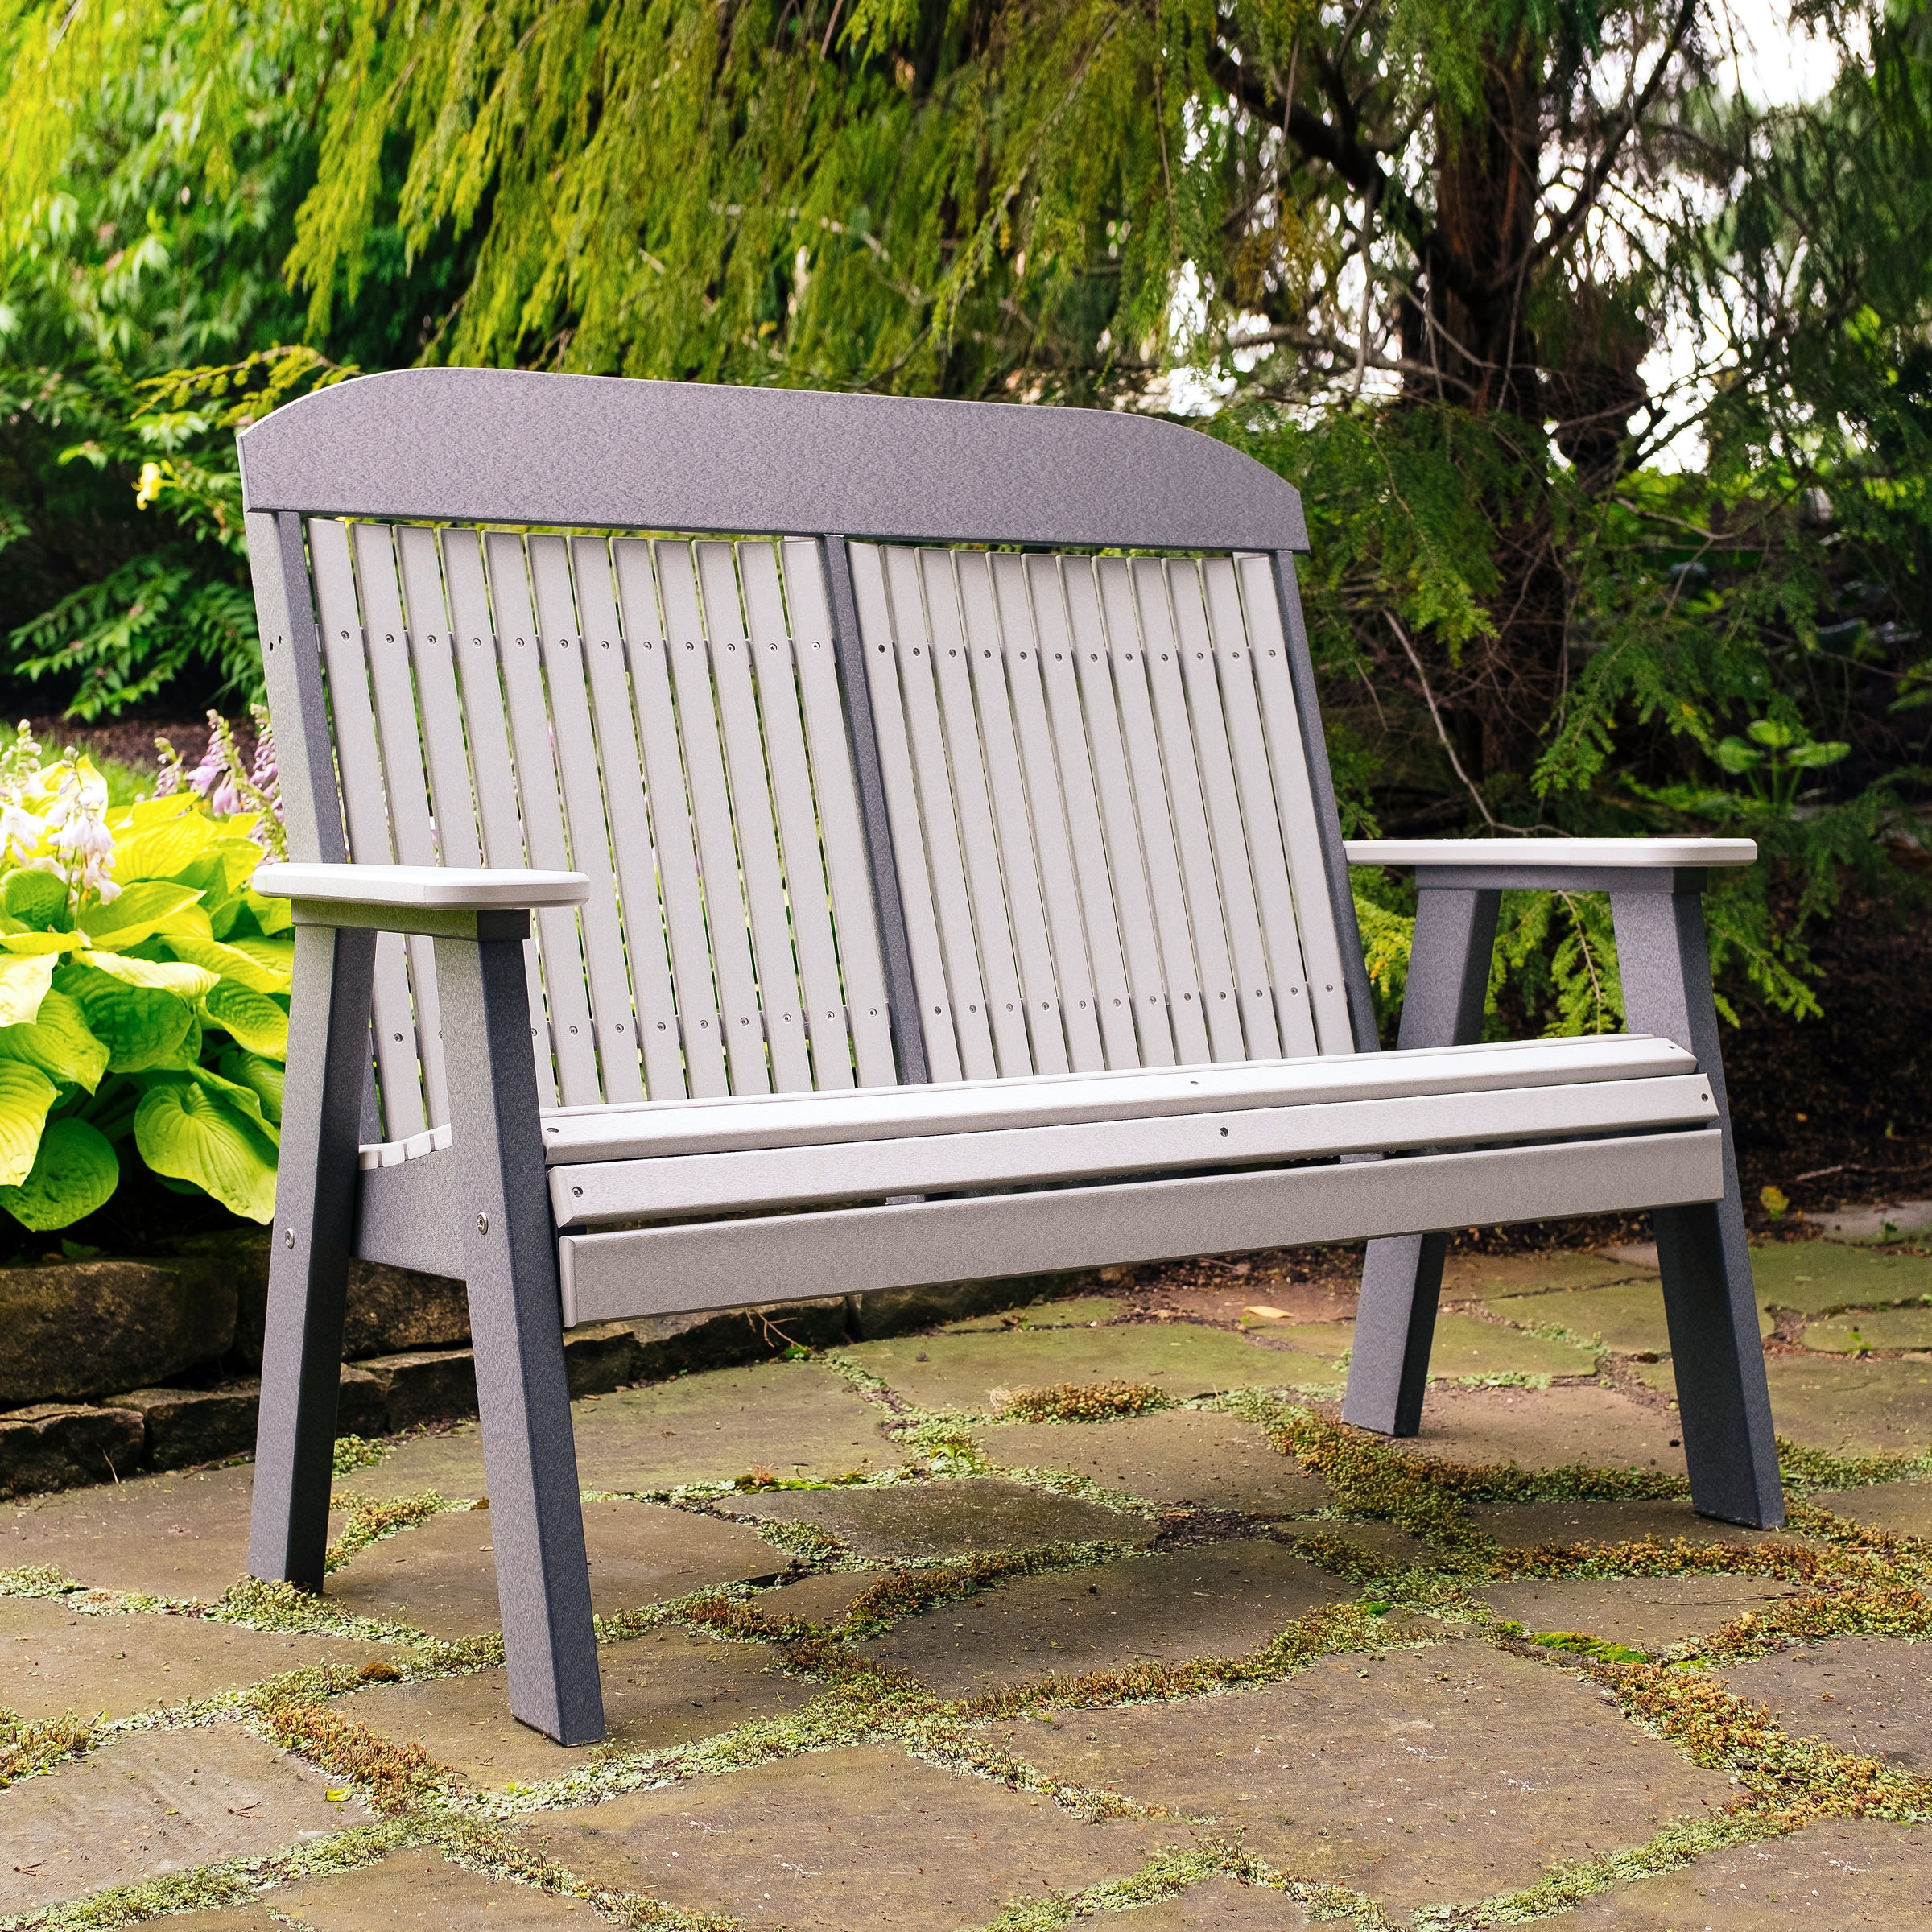 range britain peak tdp view furniture benches from plastic made front in recycled of hires bench product their s